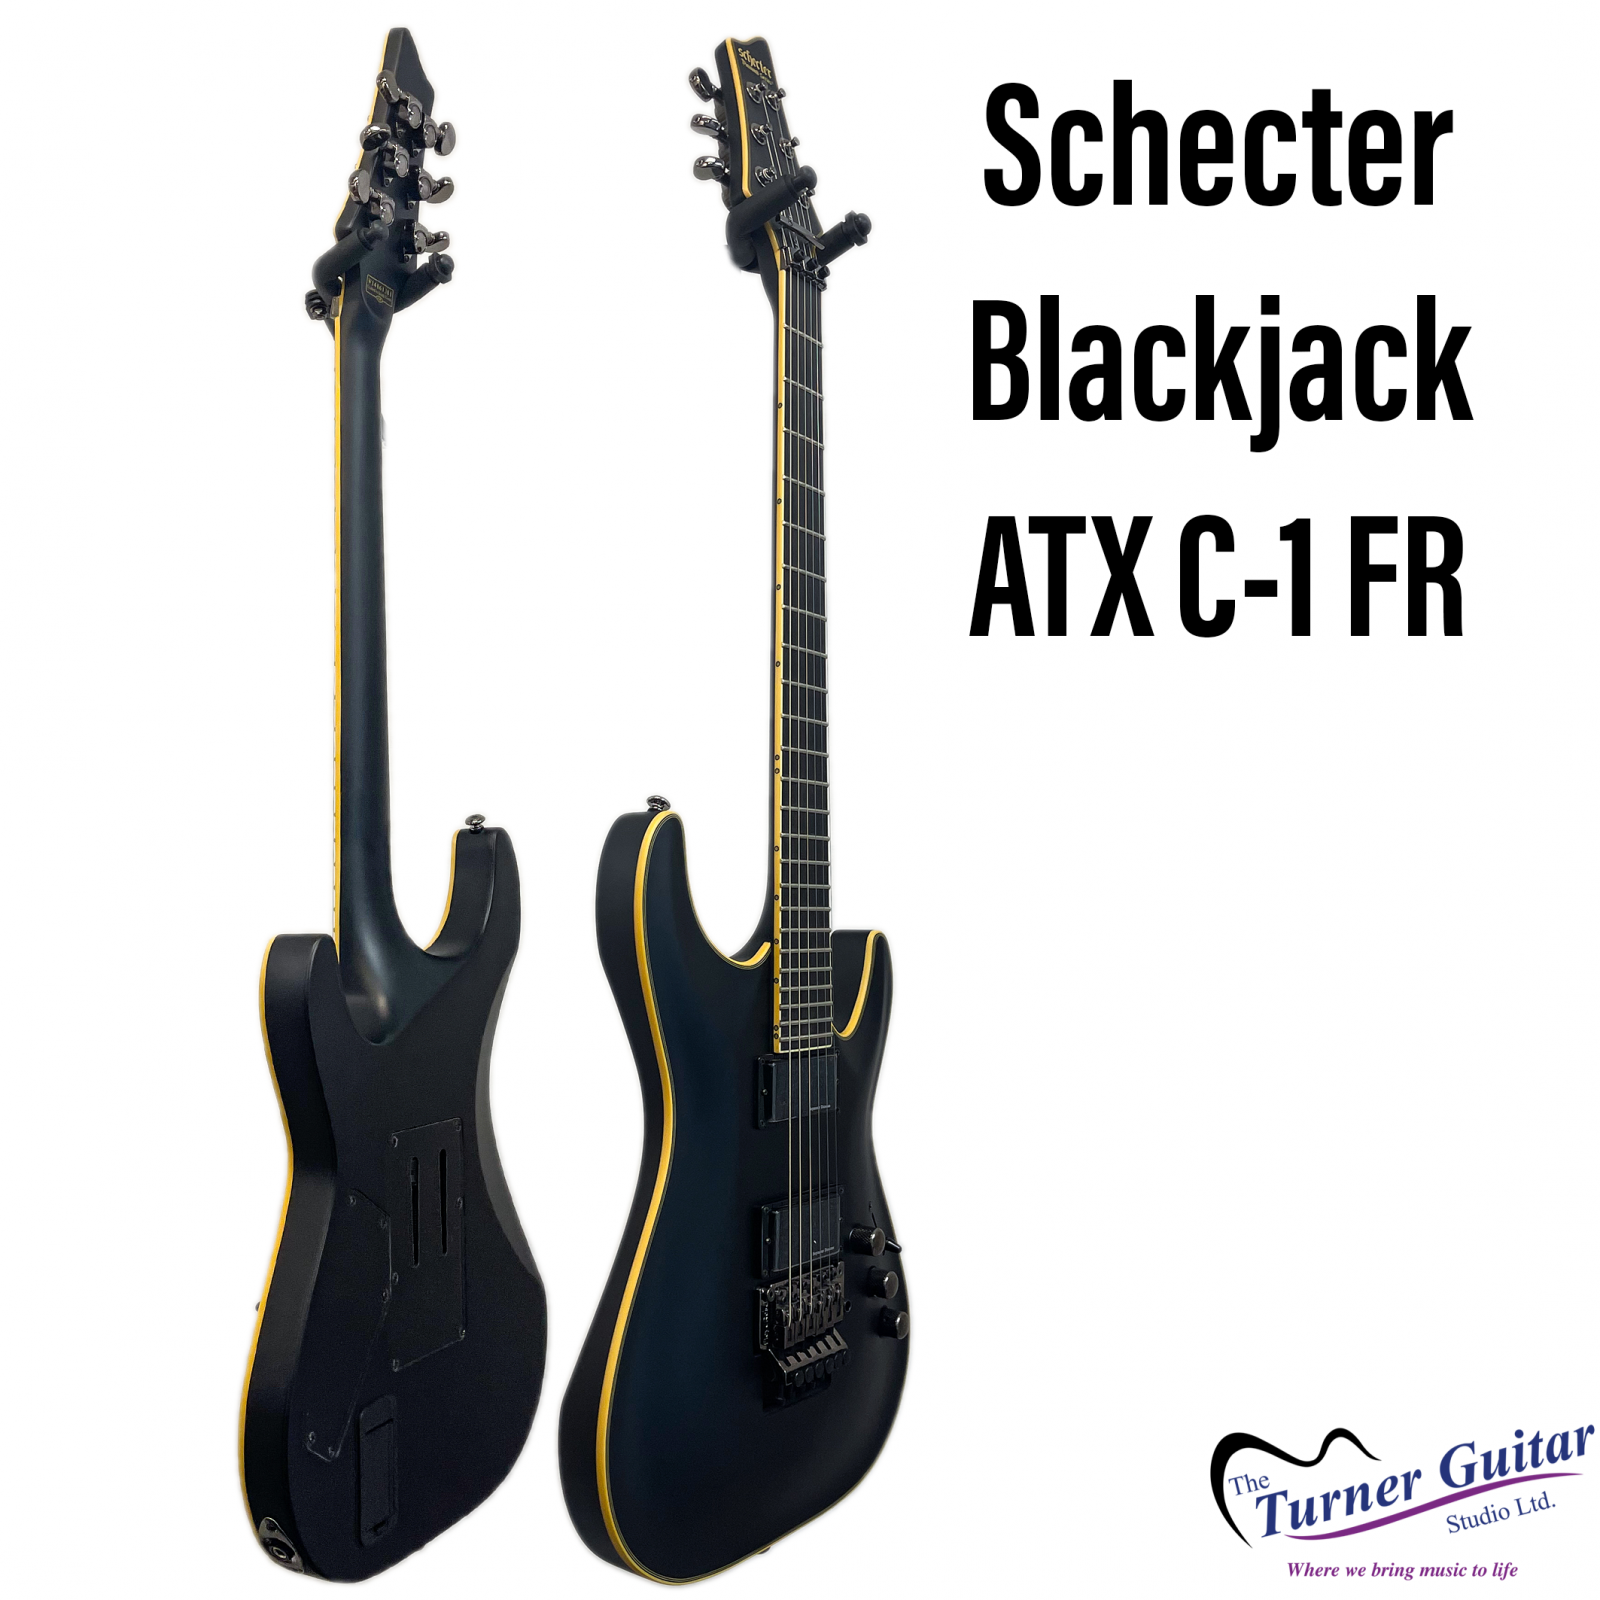 Schecter Blackjack ATX C-1 FR Electric - Aged Satin Black Finish - Discontinued Clearance